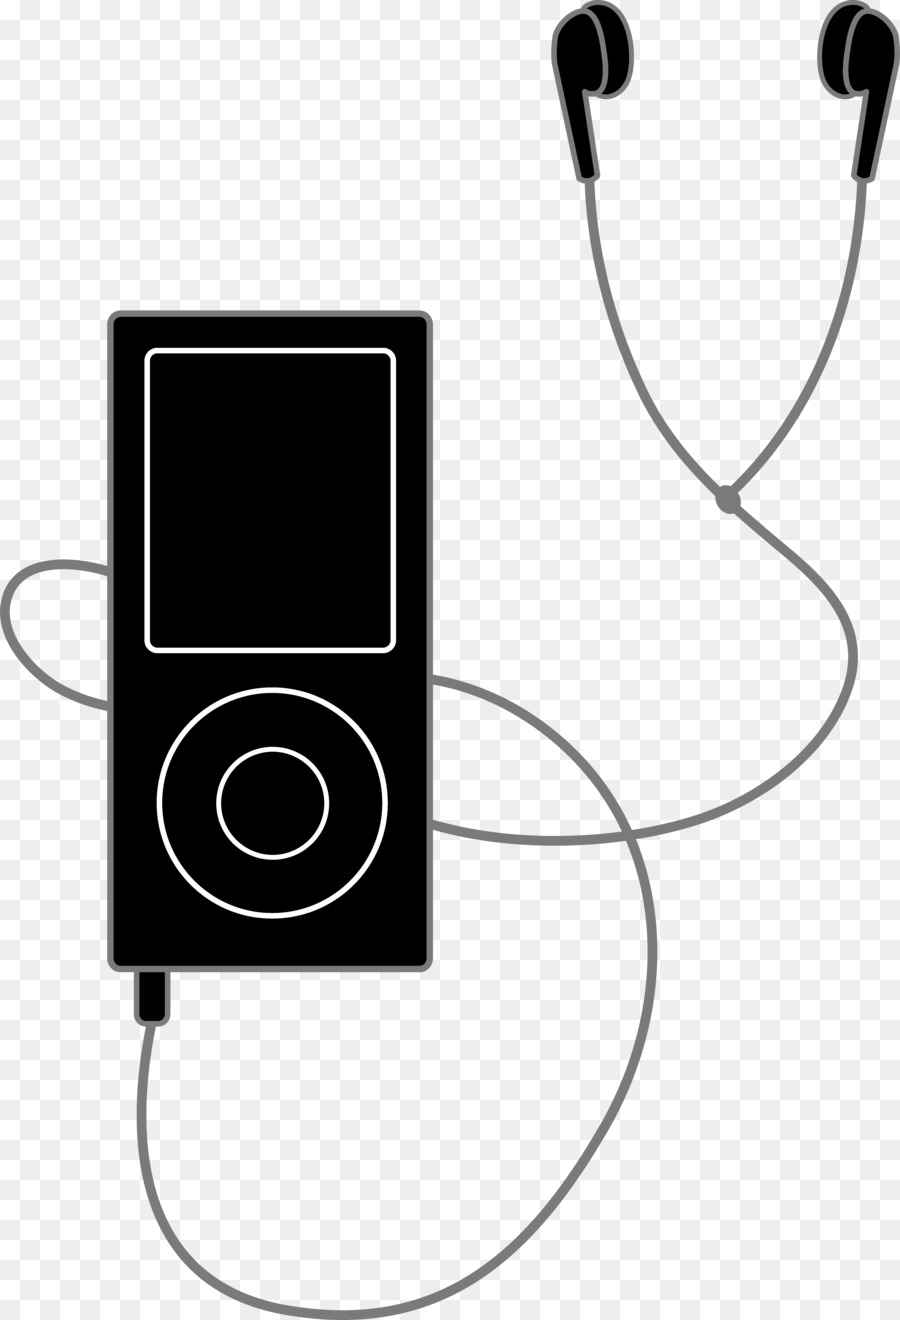 Mp3 clipart vector free Black Line Background clipart - Black, Technology, Product ... vector free